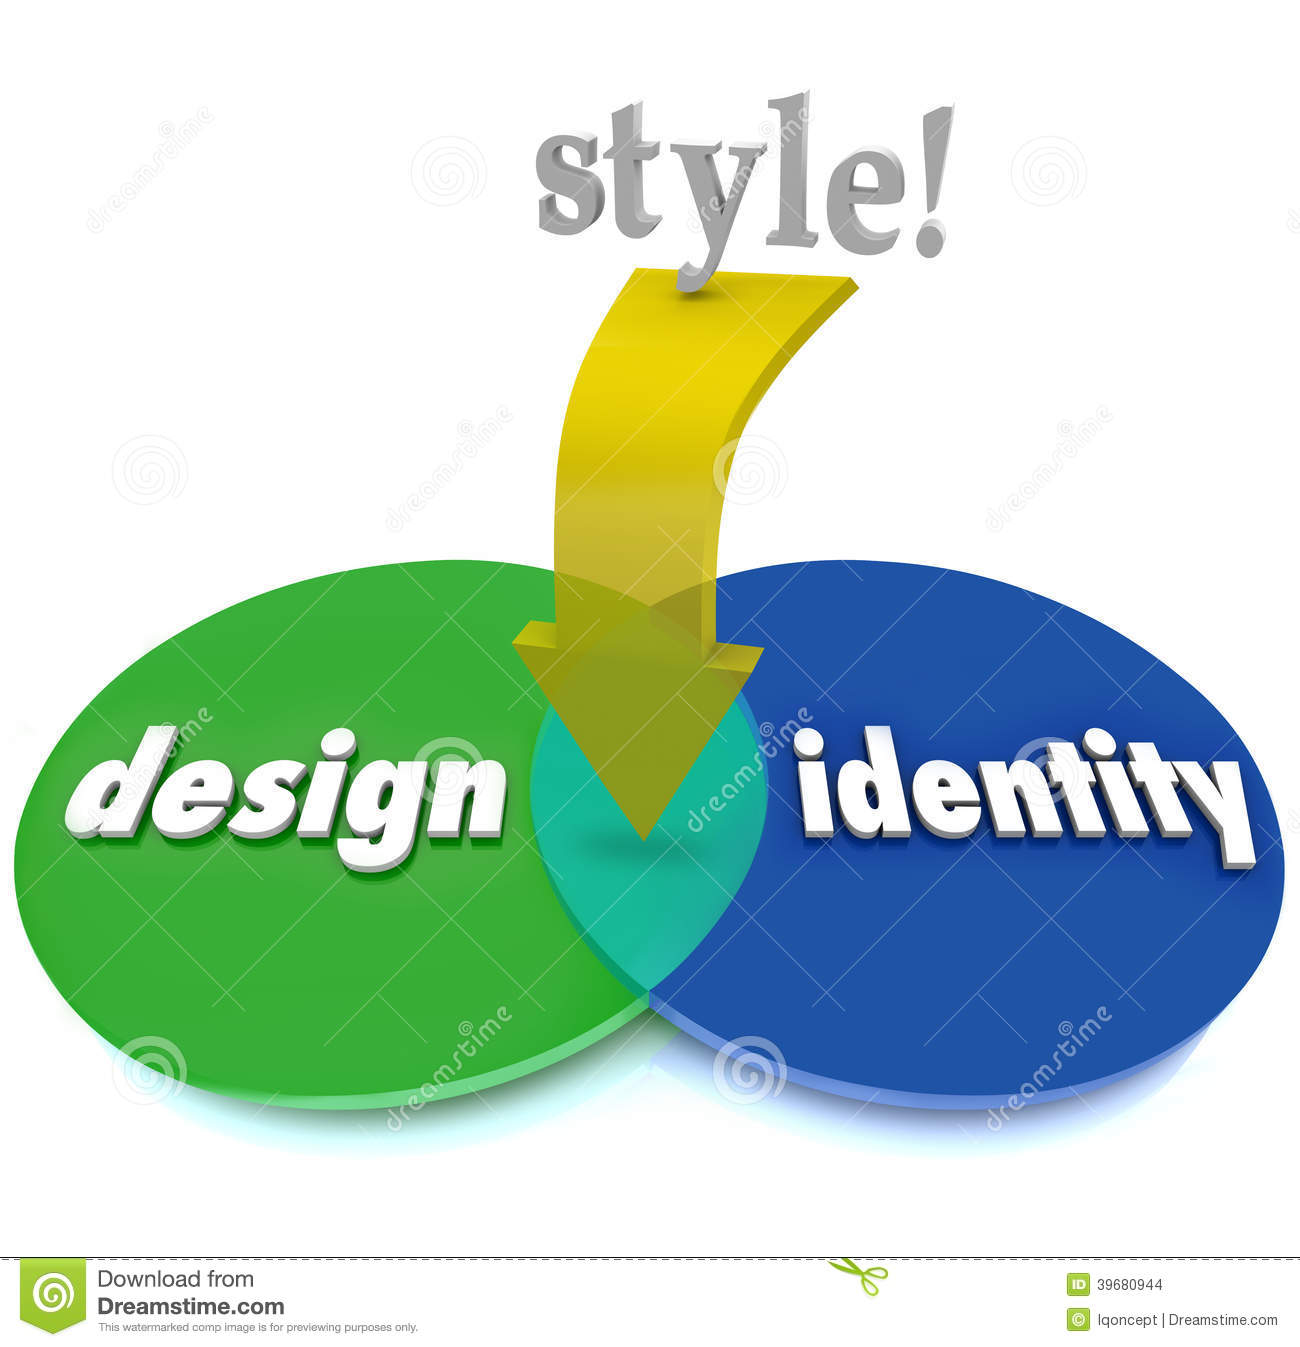 hight resolution of style is the overlapping area between design and identity on this venn diagram illustrating the unique nature of having a special different or distinctive